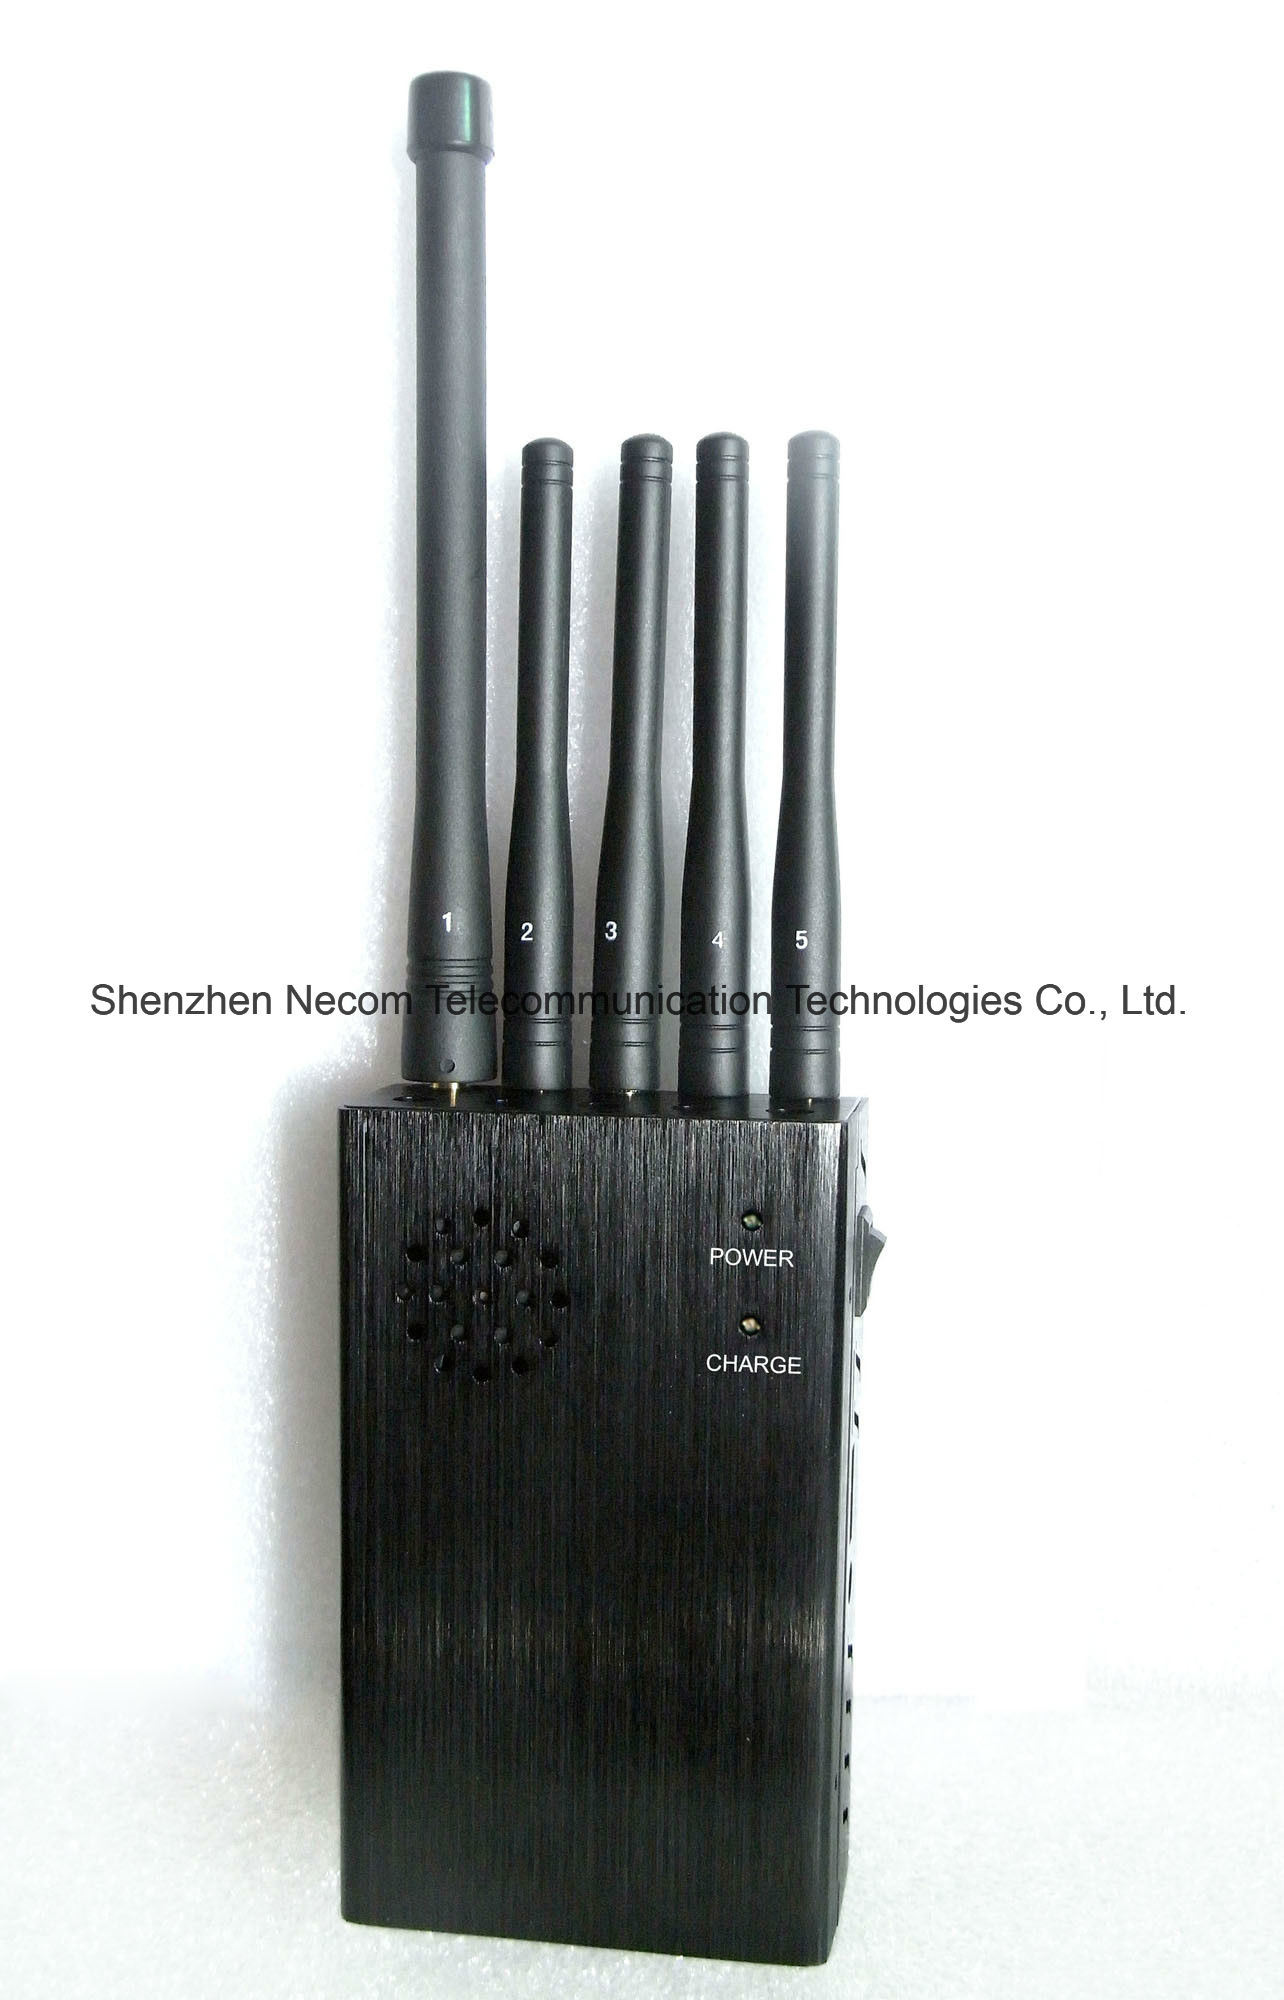 signal jammer detector sales - China 5 Antennas Handheld WiFi GPS Cell Phone Jammer, 5-Band Portable WiFi Bluetooth Wireless Video Cell Phone Jammer - China Portable Cellphone Jammer, GSM Jammer